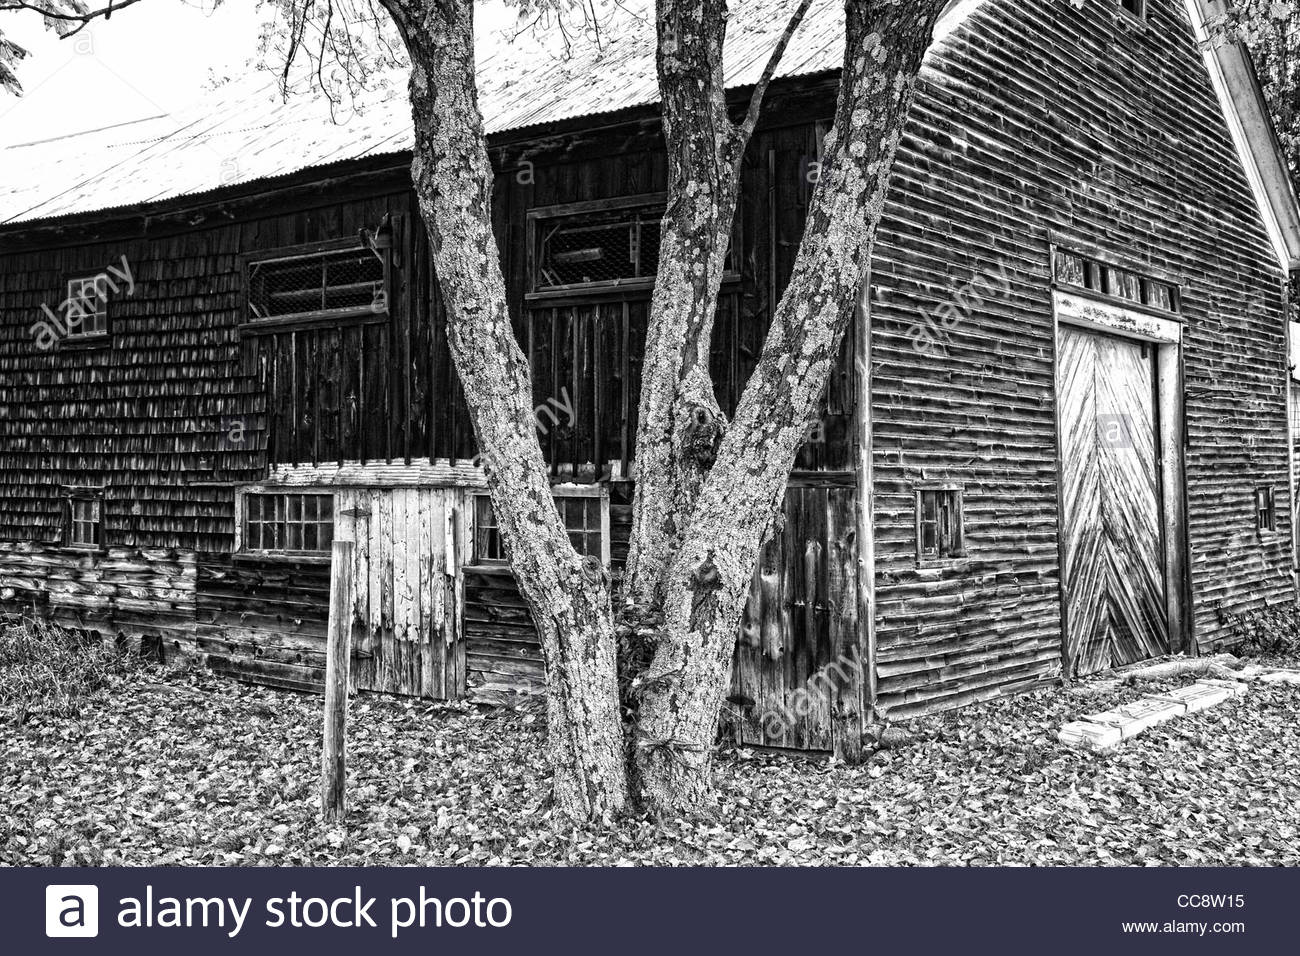 An old shake wold barn in Maine, USA - Stock Image